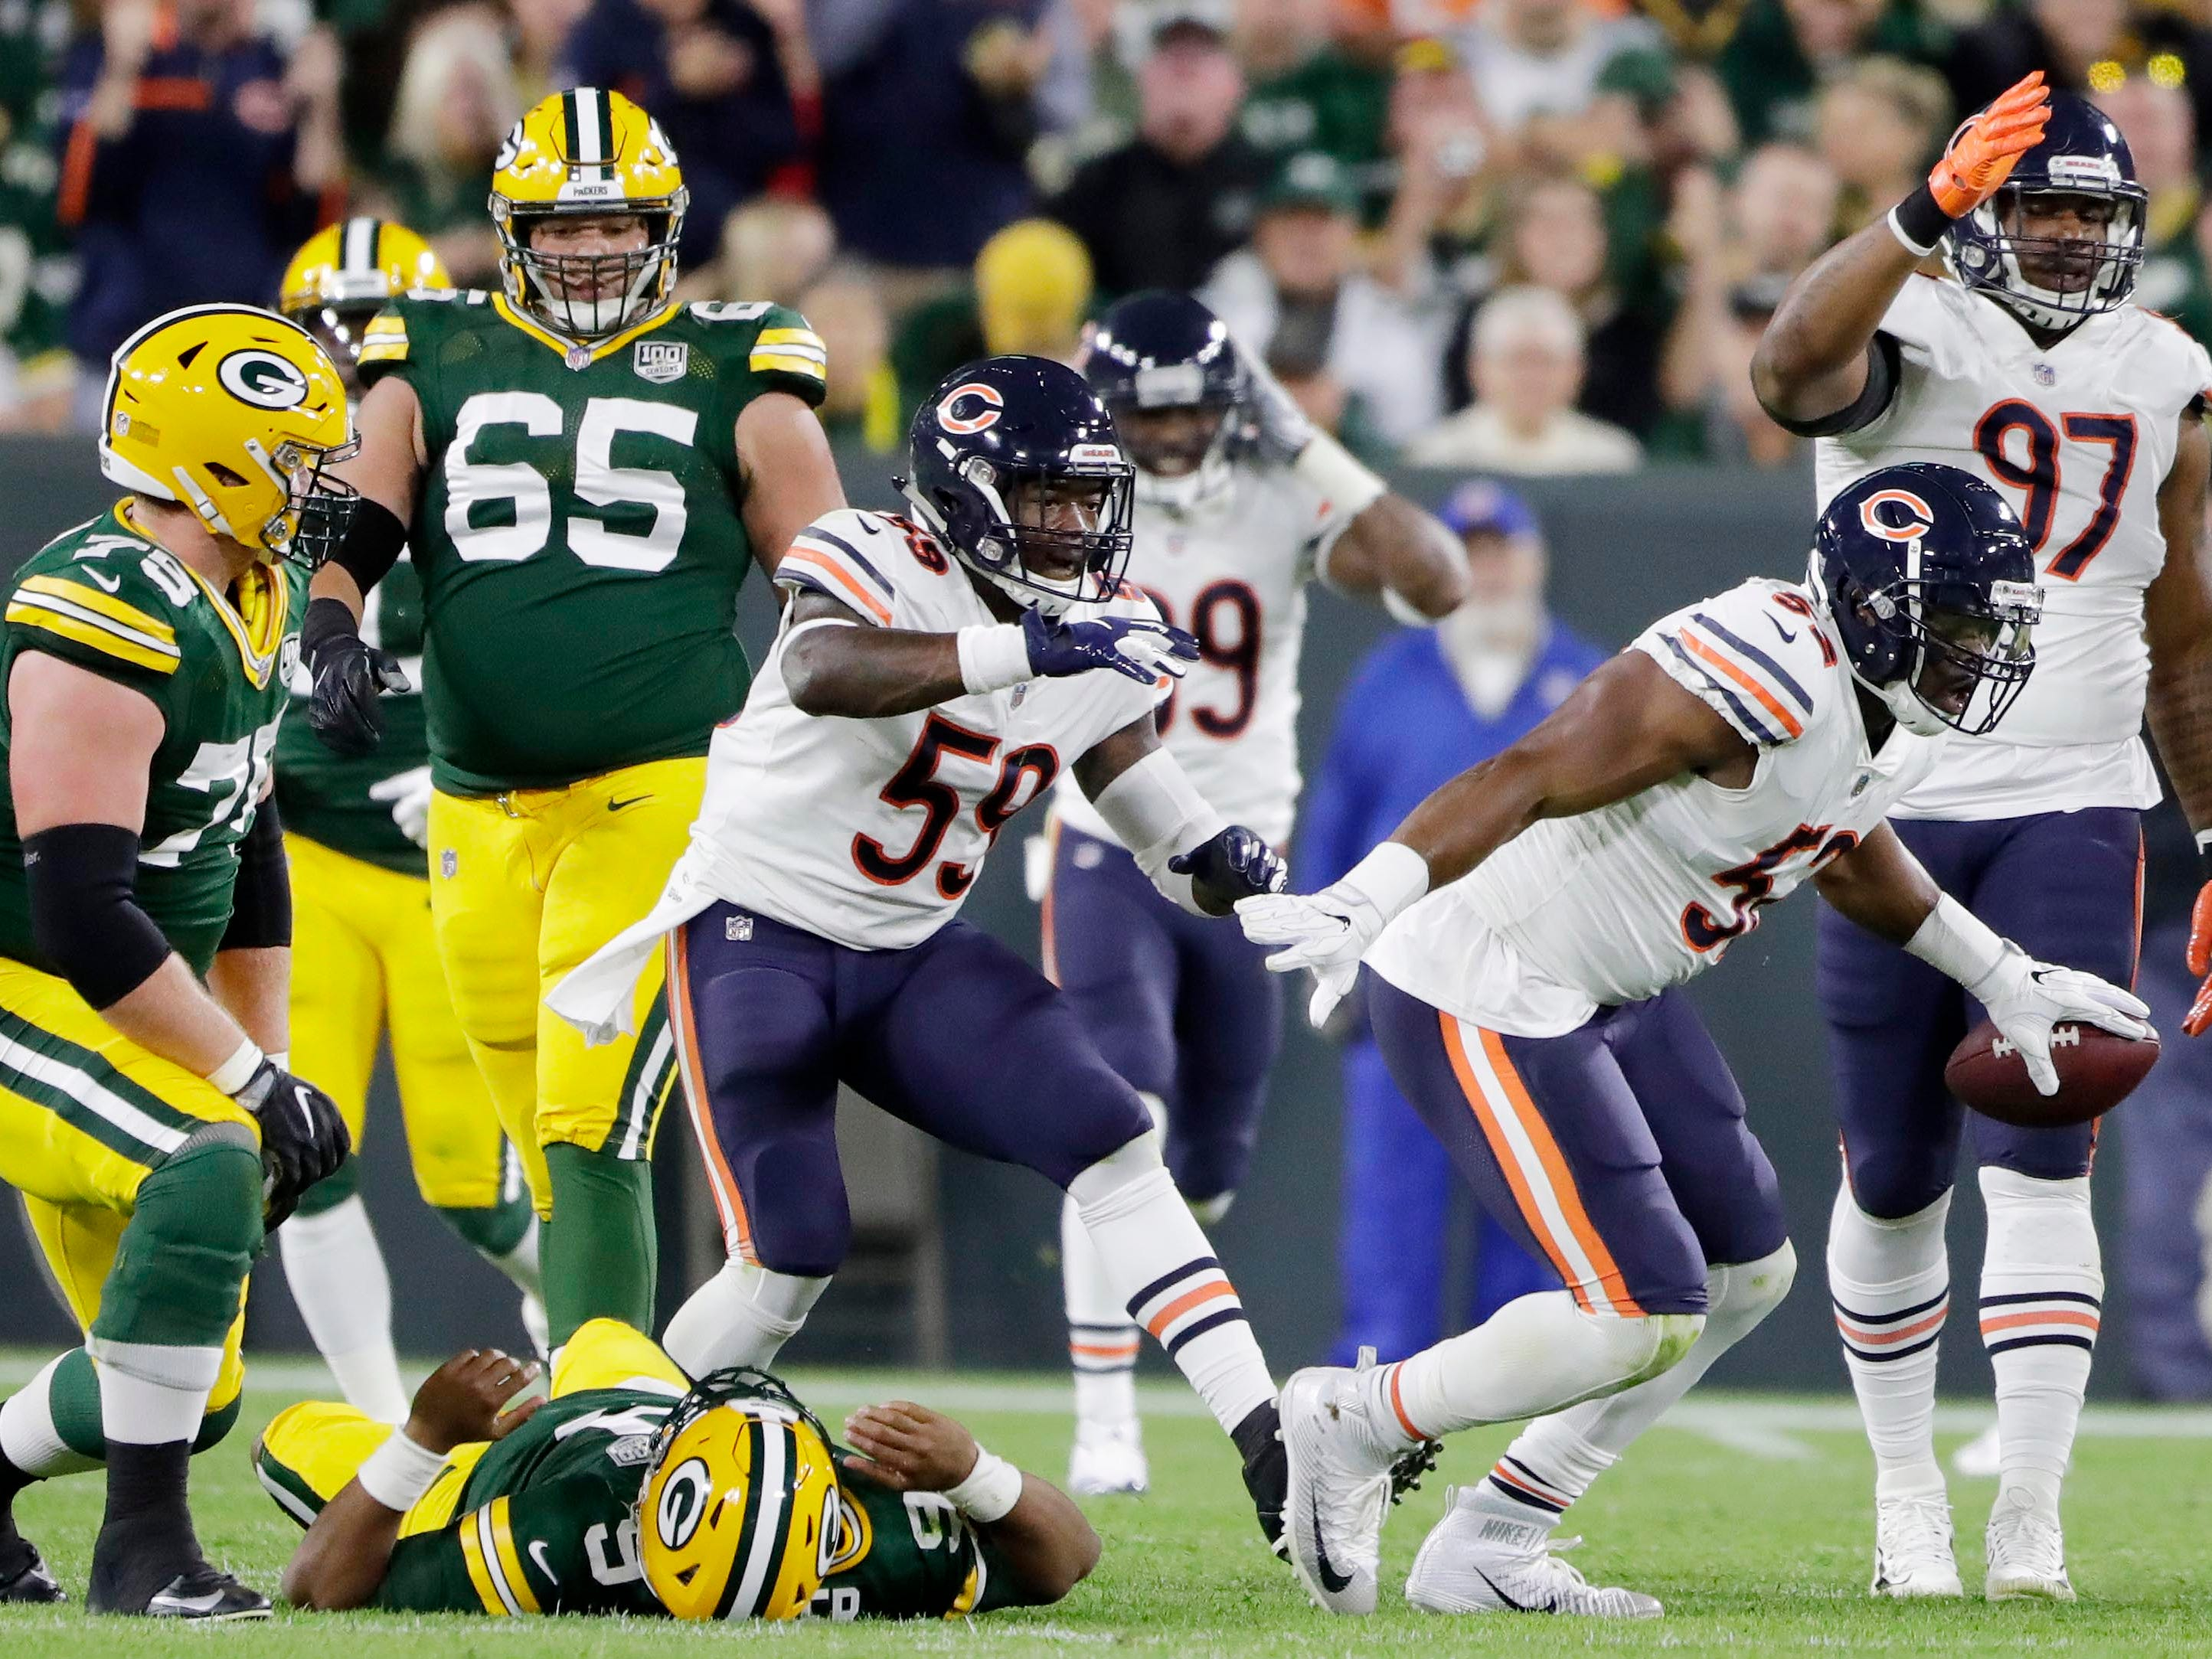 Sep 9, 2018; Green Bay, WI, USA;  Chicago Bears linebacker Khalil Mack (52) reacts after recovering a fumble by Green Bay Packers quarterback DeShone Kizer (9) in the second quarter at Lambeau Field.  Mandatory Credit: Adam Wesley/Green Bay Press Gazette via USA TODAY NETWORK